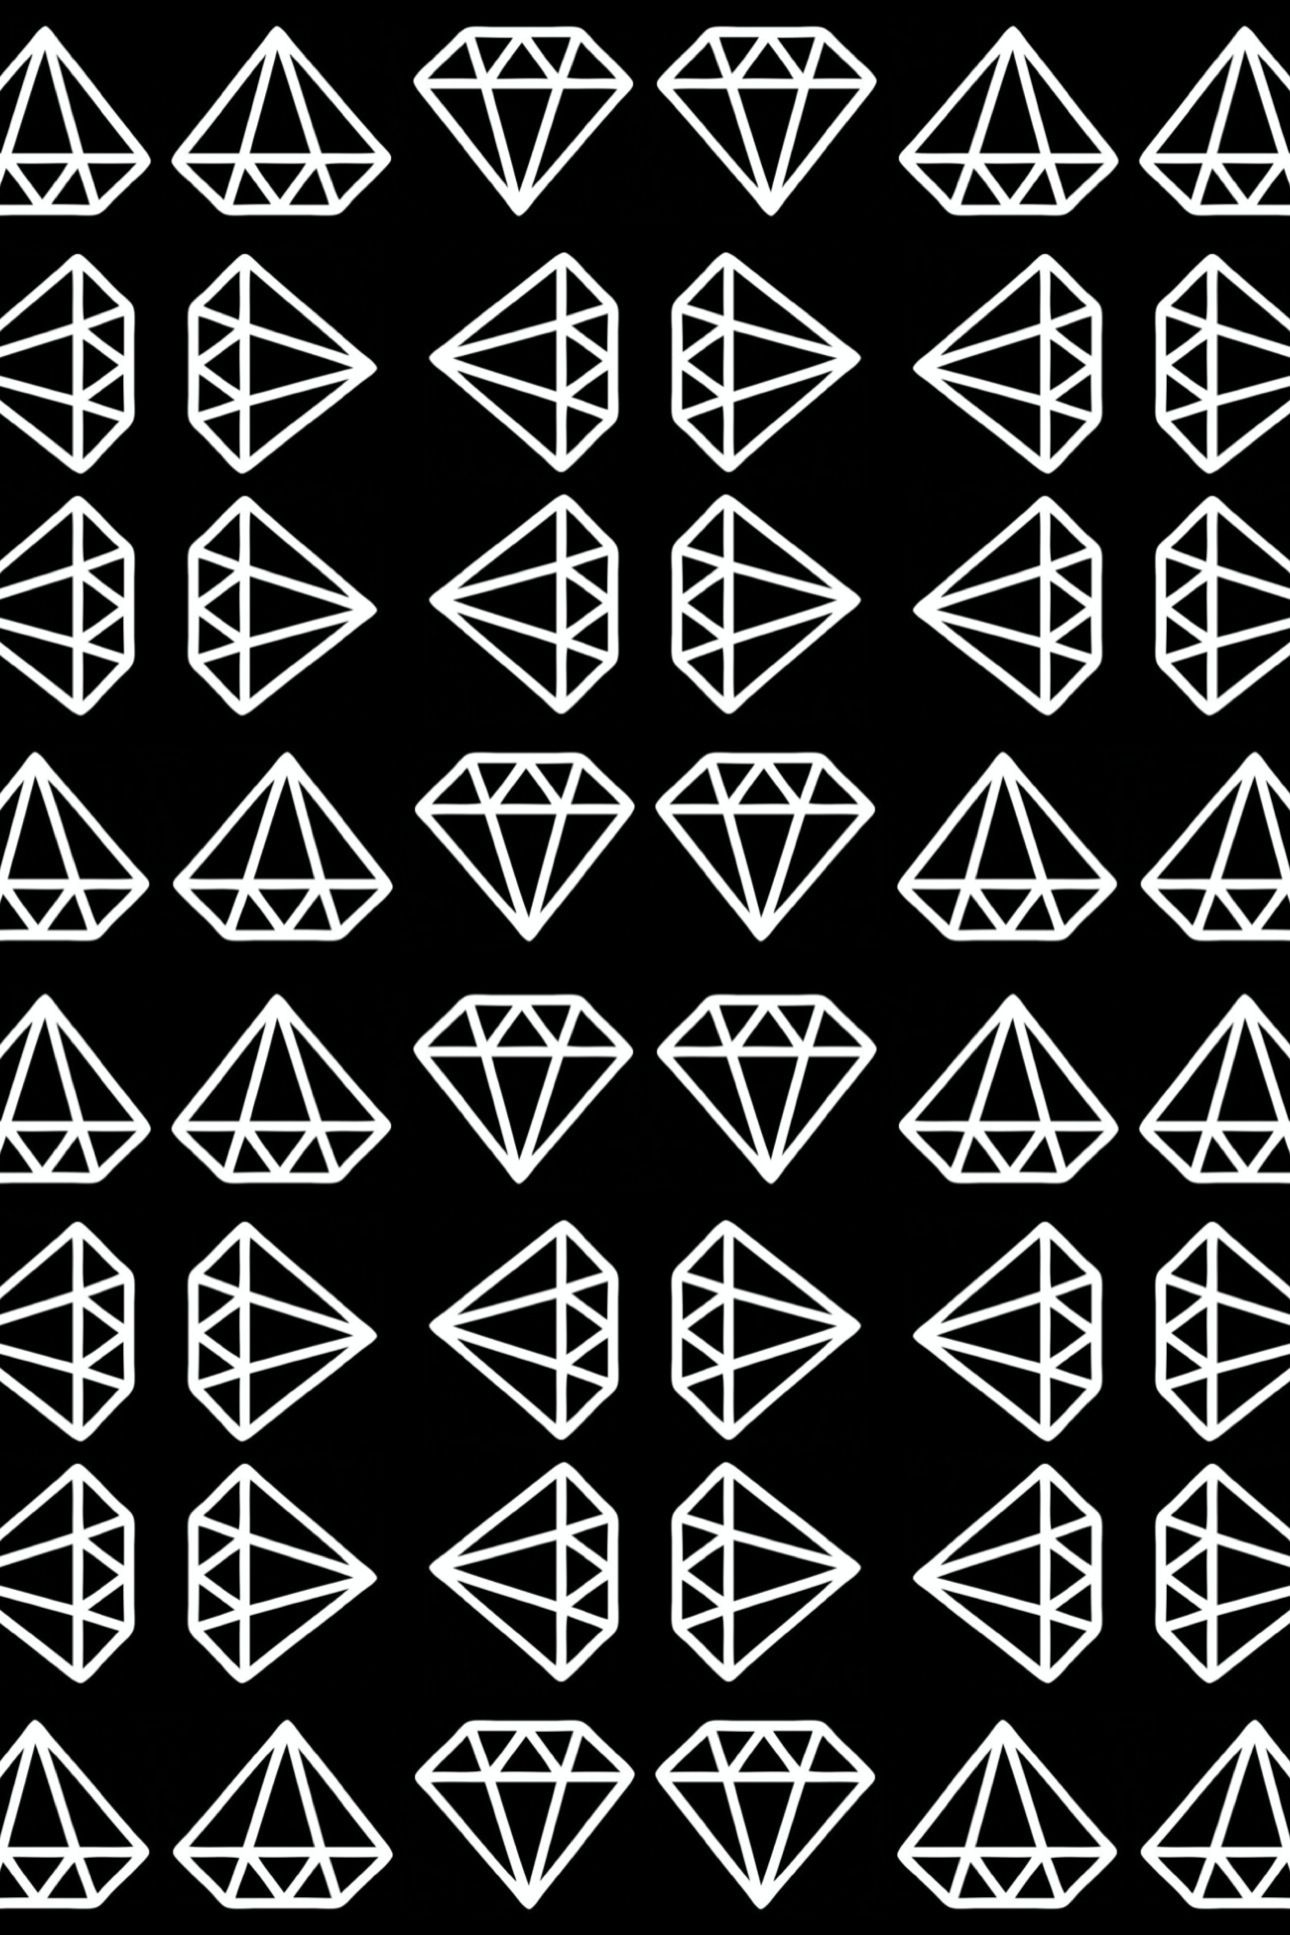 Tumblr iphone 6 wallpaper black and white - 15 Cute Hd Wallpapers Style Arena Wallpapers Pinterest Wallpaper Hd Wallpaper And Vinyl Toys